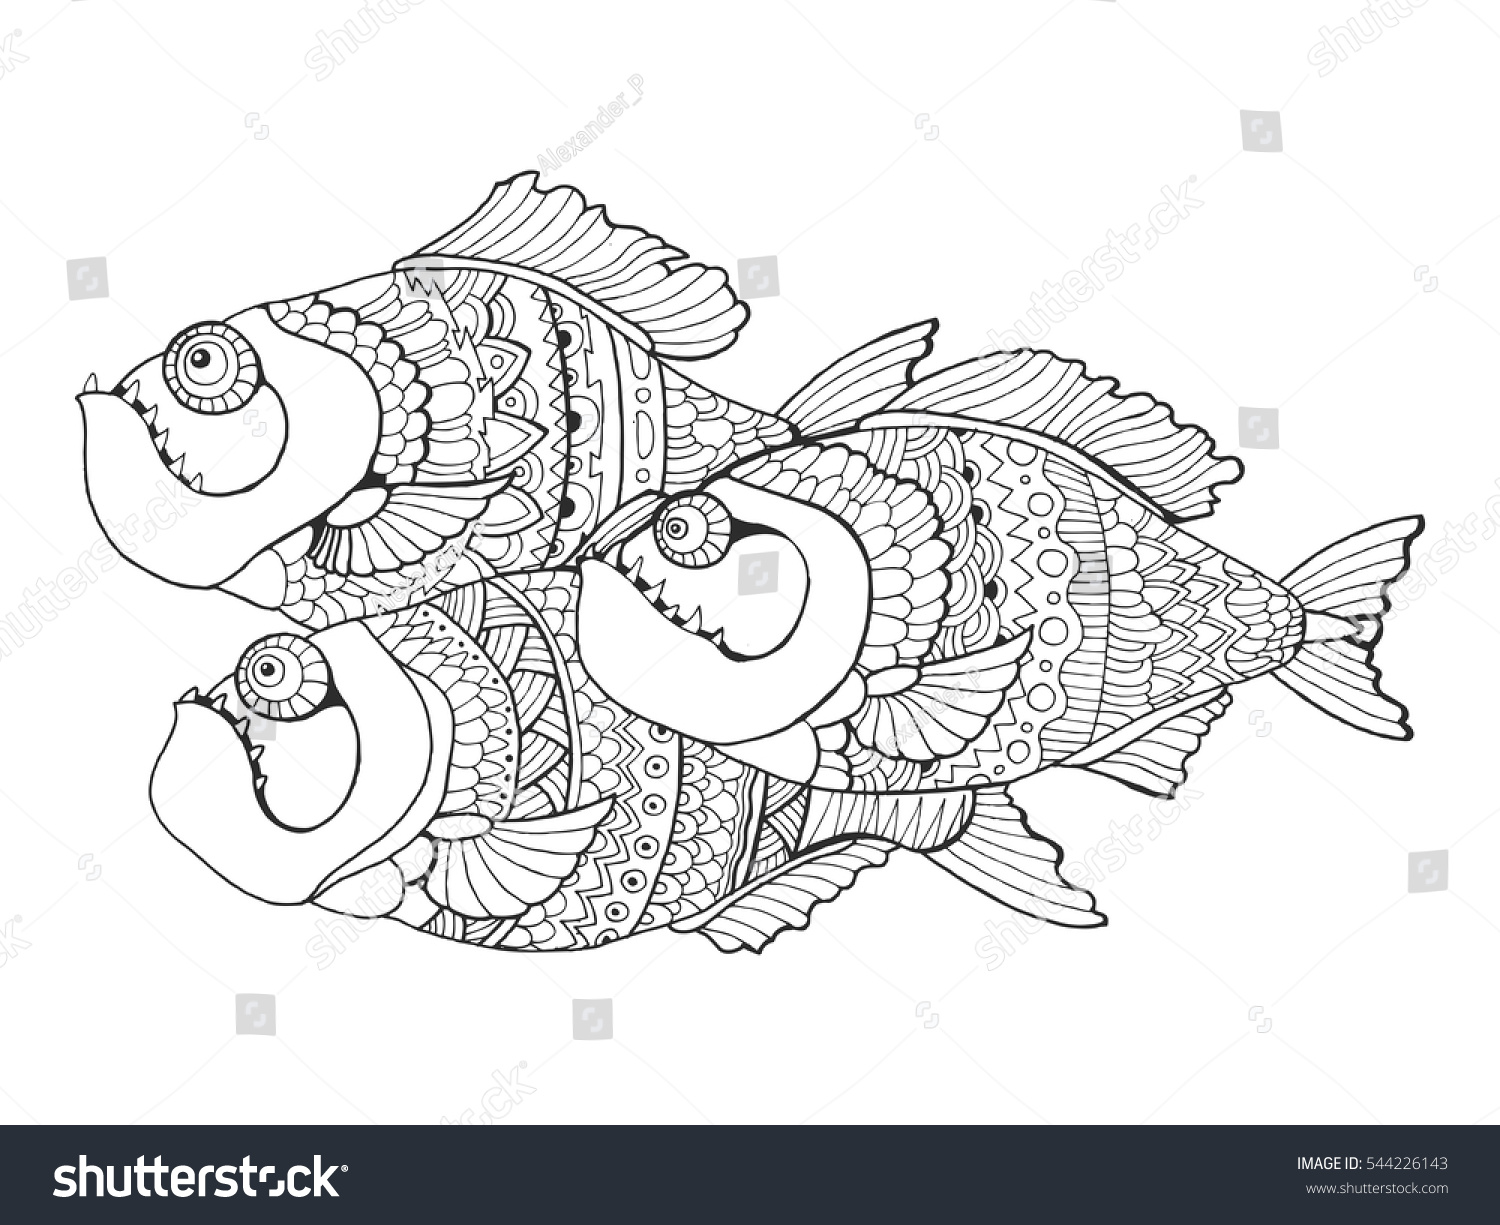 Piranha Fish Coloring Book For Adults Vector Illustration Anti Stress Adult